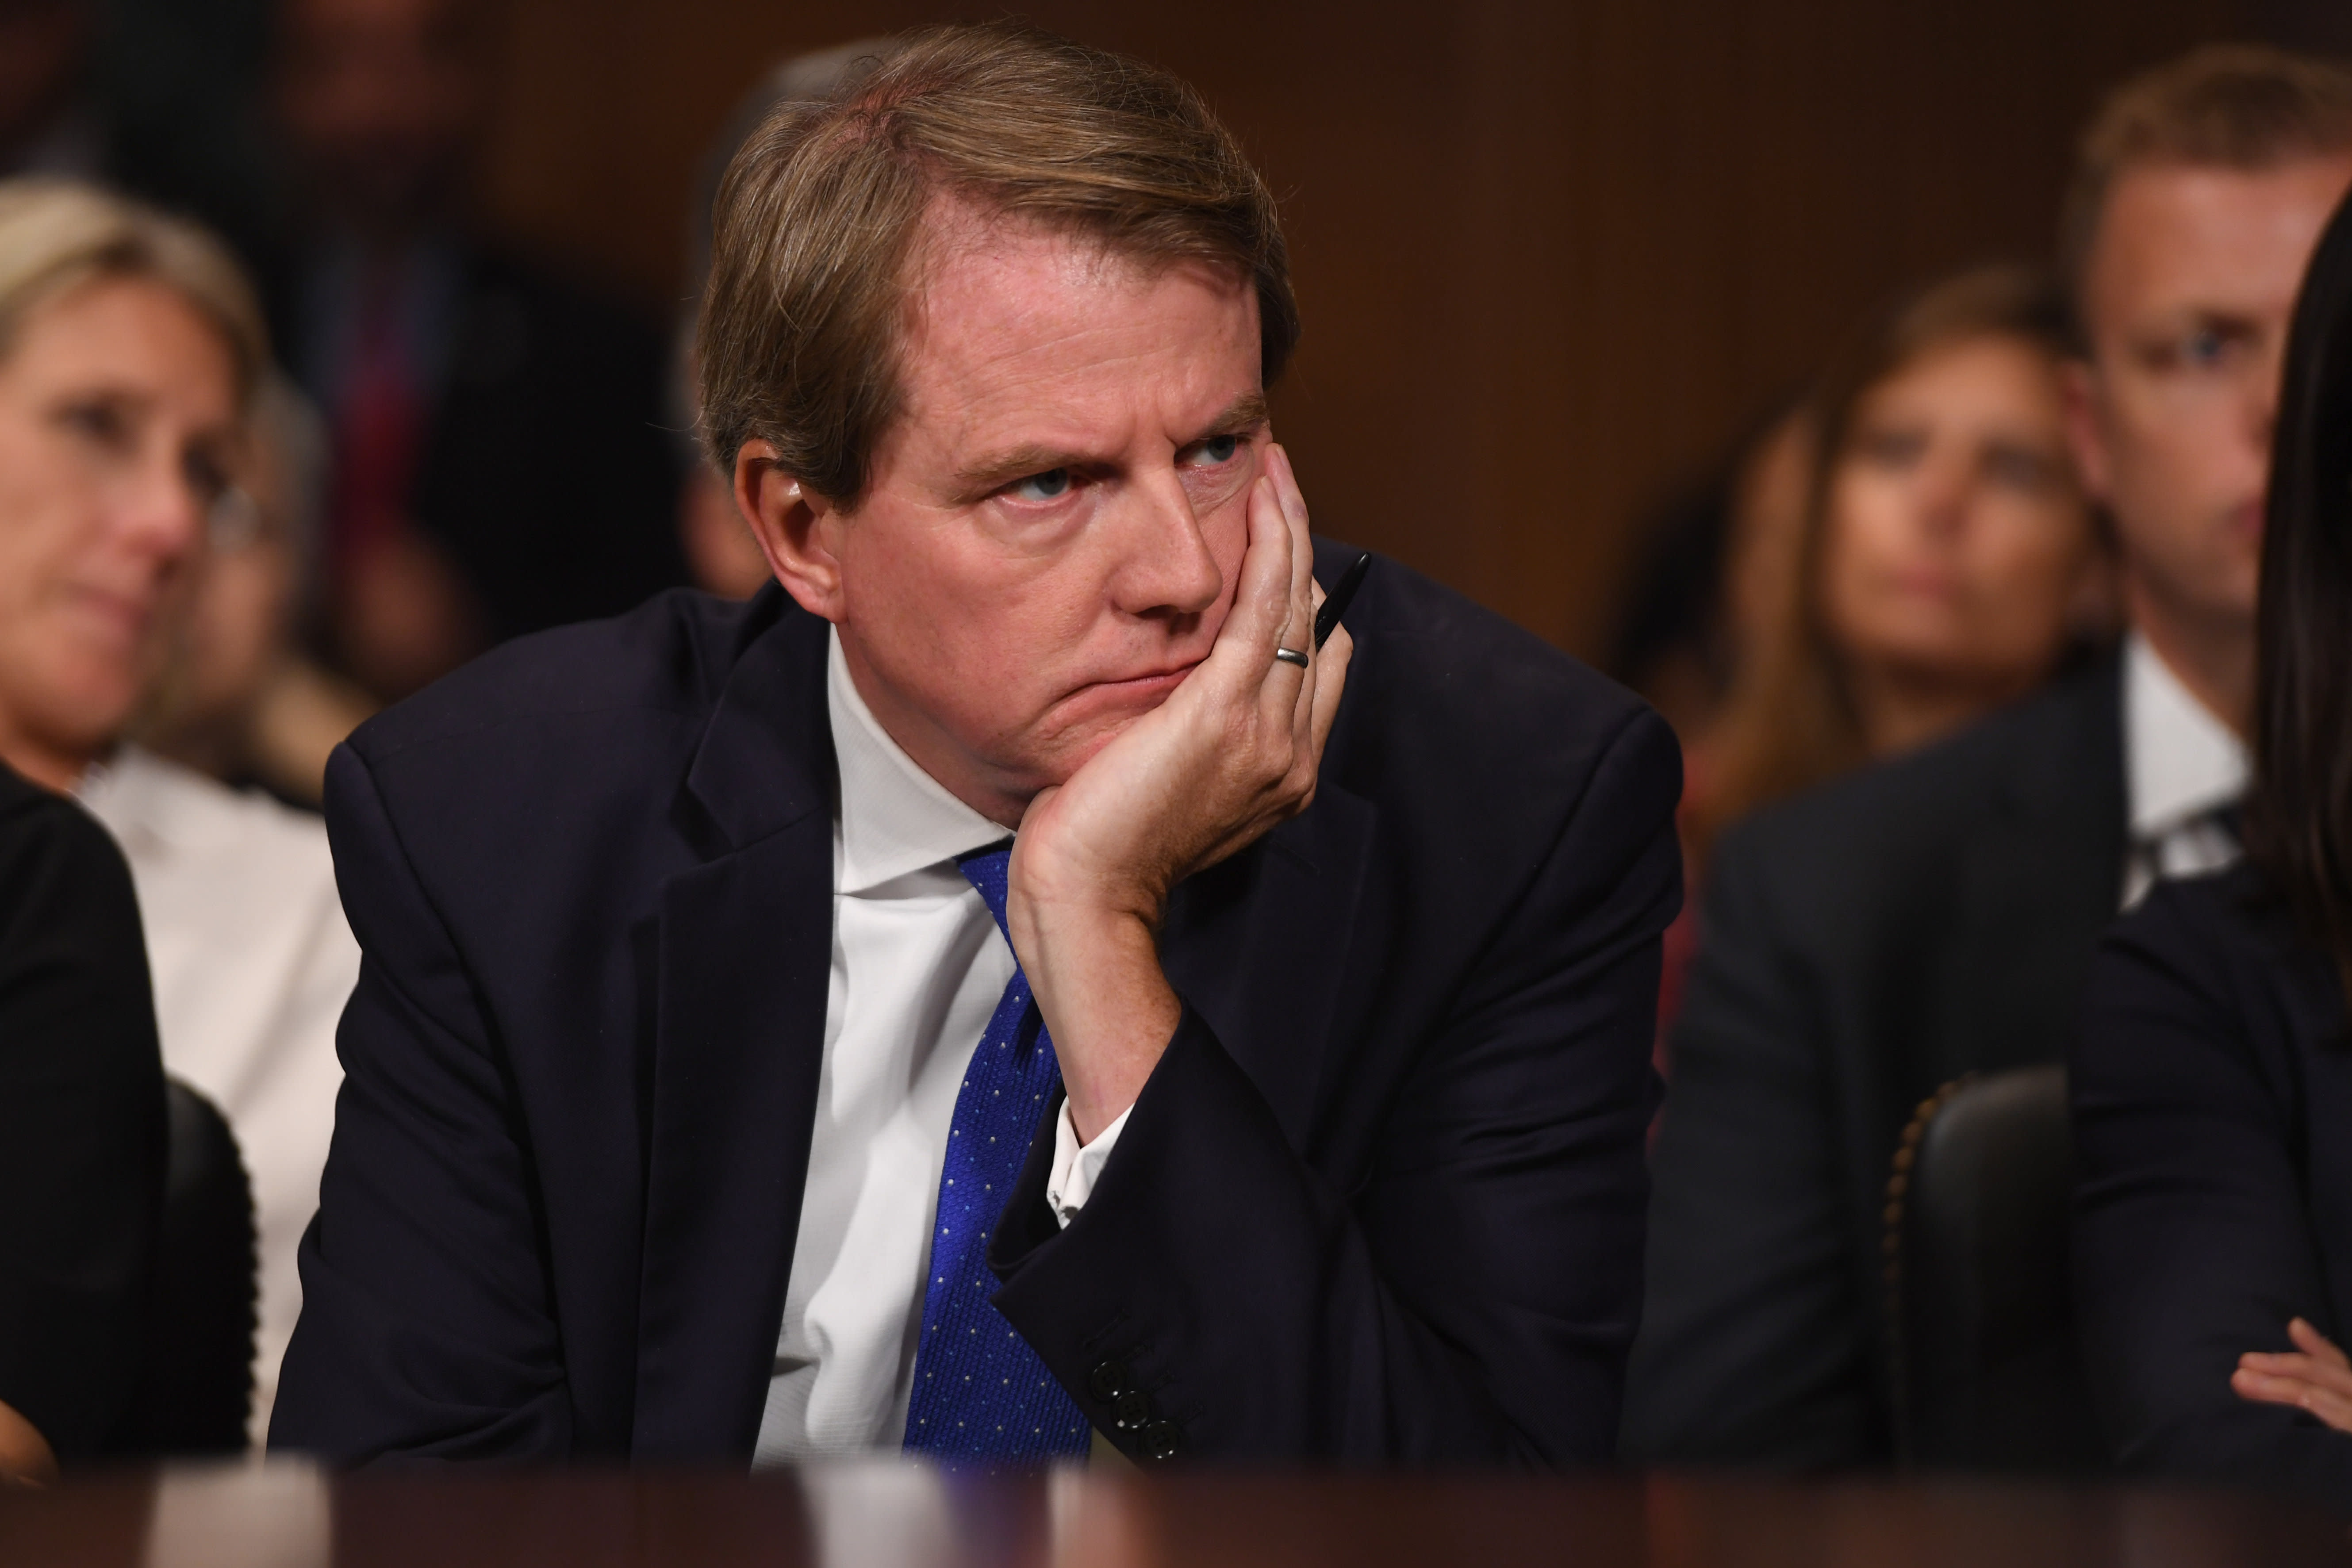 Trump directs former White House counsel Don McGahn not to testify after Democrats issue subpoena